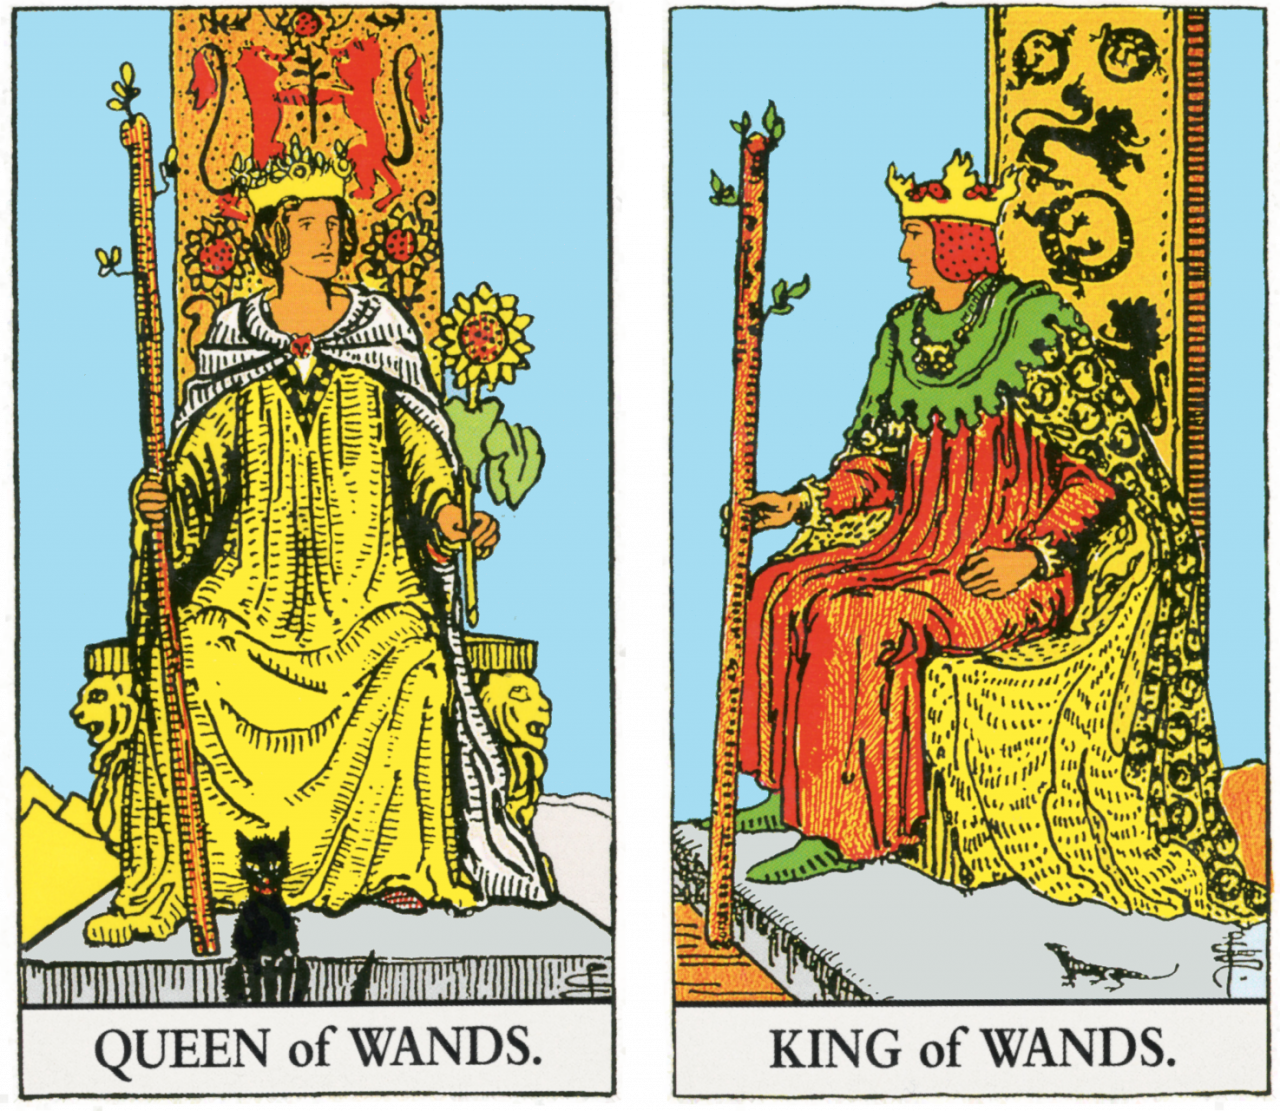 Queen and King of Wands